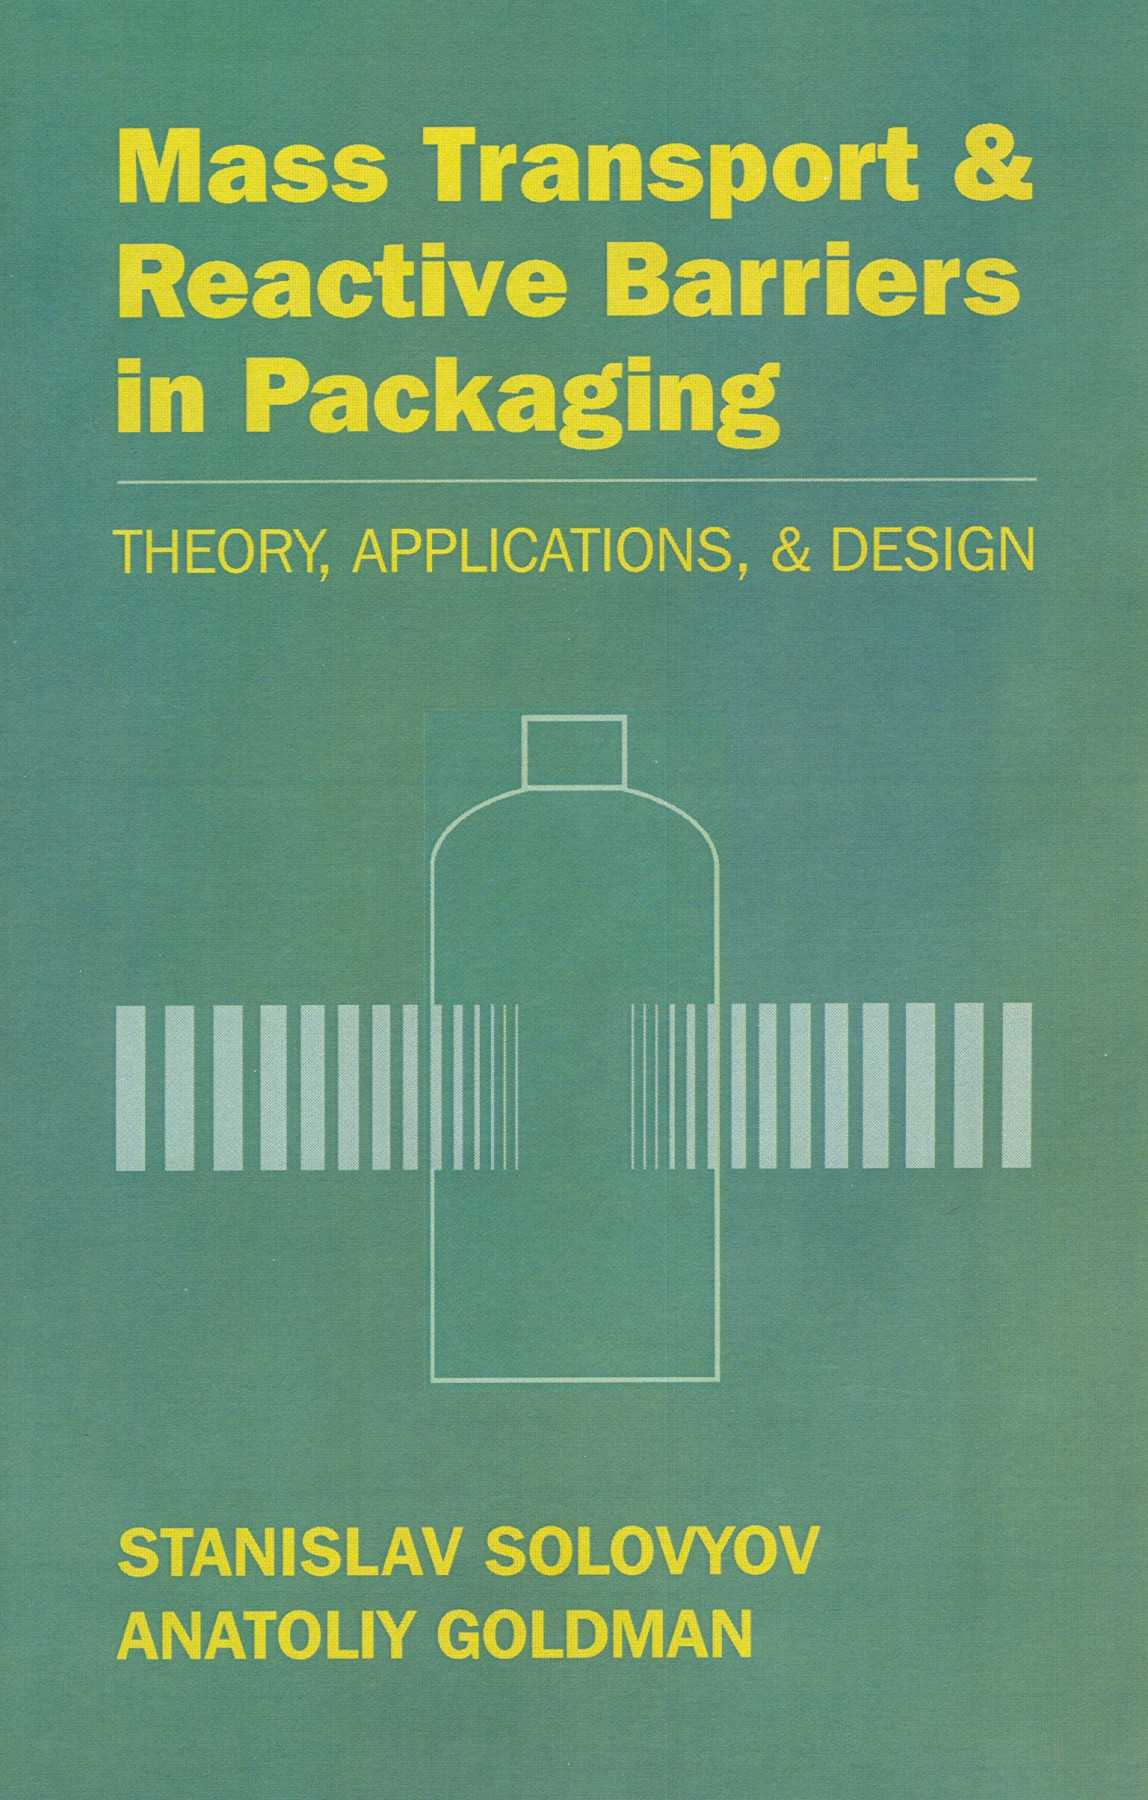 Mass Transport and Reactive Barriers in Packaging By Solovyov, Stanislav/ Goldman, Anatoliy